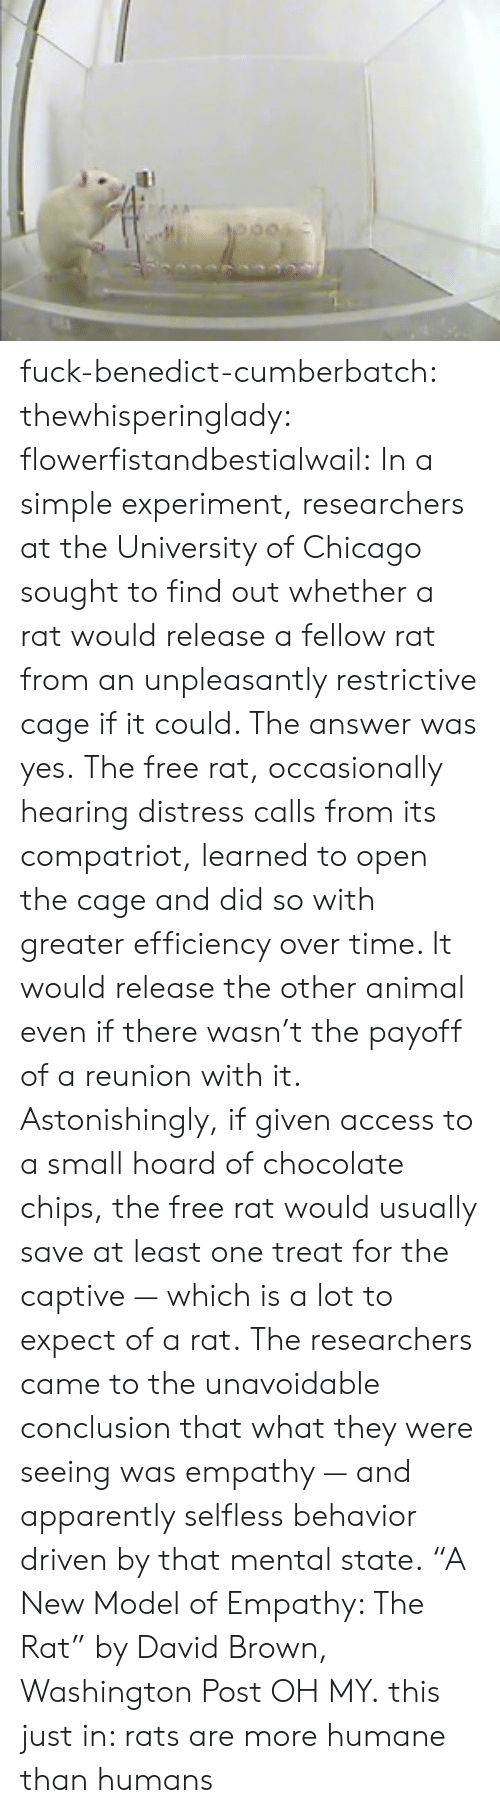 "Apparently, Chicago, and Target: fuck-benedict-cumberbatch:  thewhisperinglady:  flowerfistandbestialwail:   In a simple experiment, researchers at the University of Chicago sought to find out whether a rat would release a fellow rat from an unpleasantly restrictive cage if it could. The answer was yes. The free rat, occasionally hearing distress calls from its compatriot, learned to open the cage and did so with greater efficiency over time. It would release the other animal even if there wasn't the payoff of a reunion with it. Astonishingly, if given access to a small hoard of chocolate chips, the free rat would usually save at least one treat for the captive — which is a lot to expect of a rat. The researchers came to the unavoidable conclusion that what they were seeing was empathy — and apparently selfless behavior driven by that mental state. ""A New Model of Empathy: The Rat"" by David Brown, Washington Post   OH MY.  this just in: rats are more humane than humans"